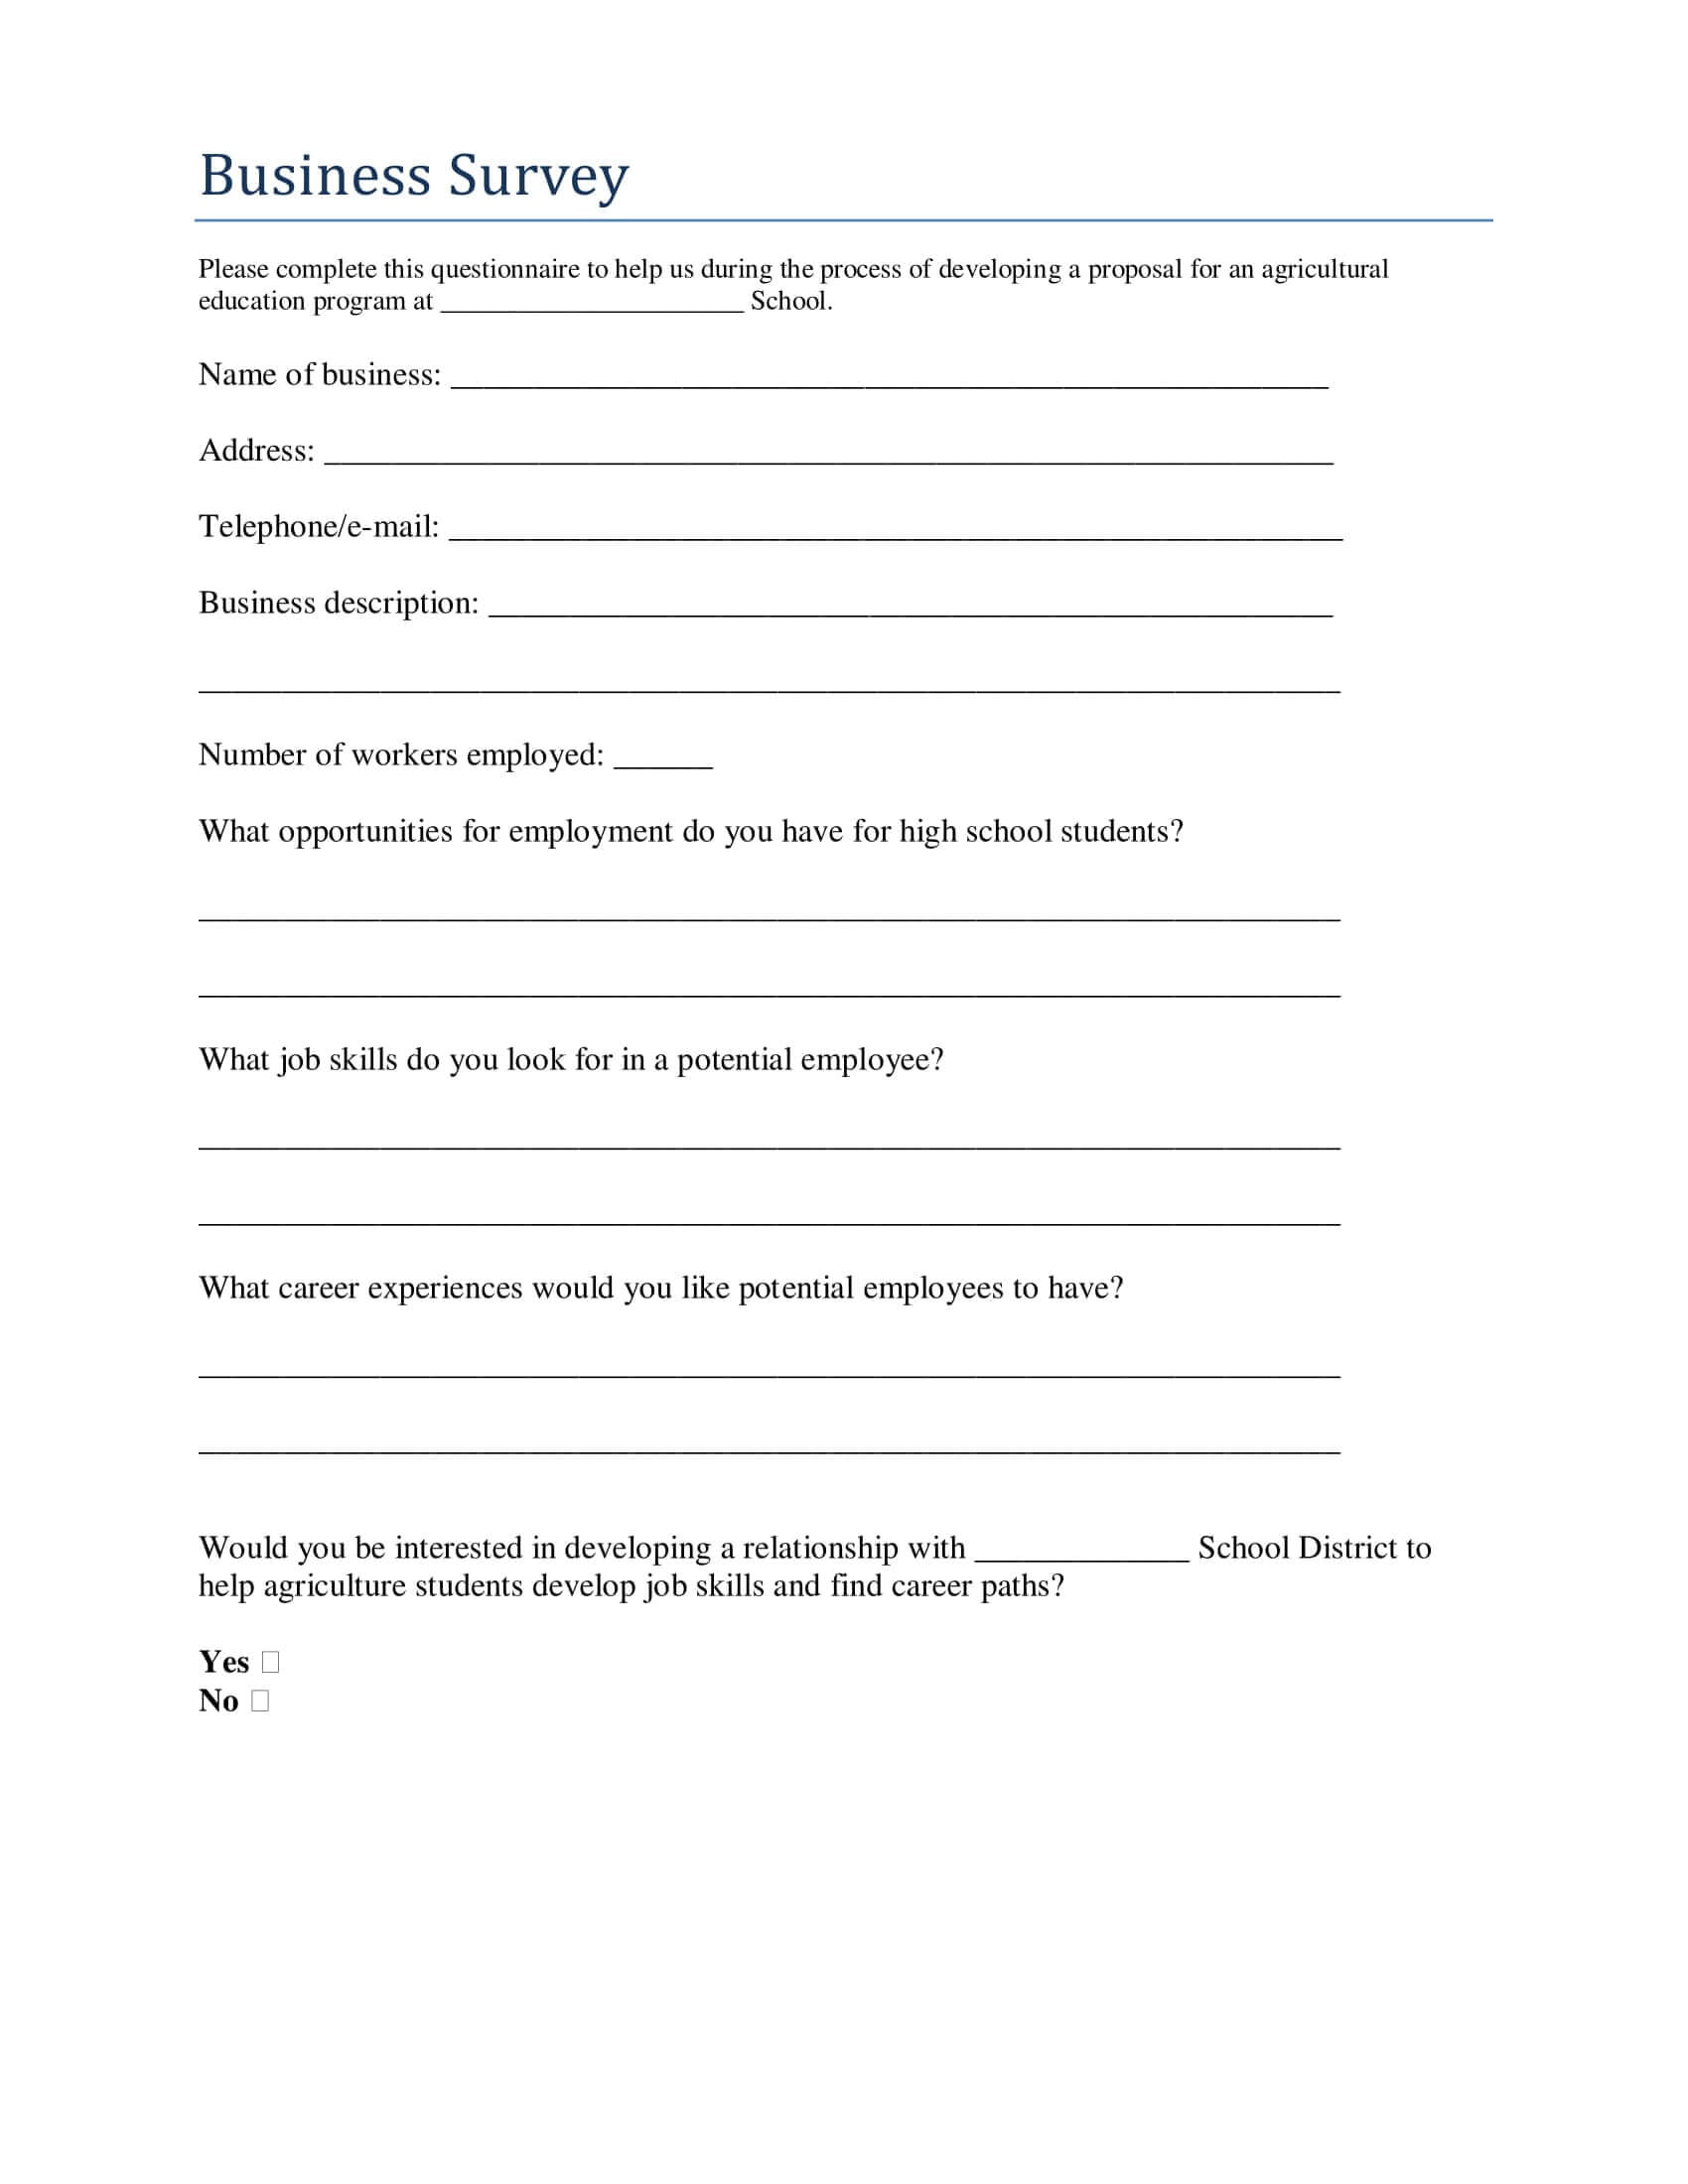 Examples On How To Conduct A Business Survey | Examples With Regard To Business Process Questionnaire Template